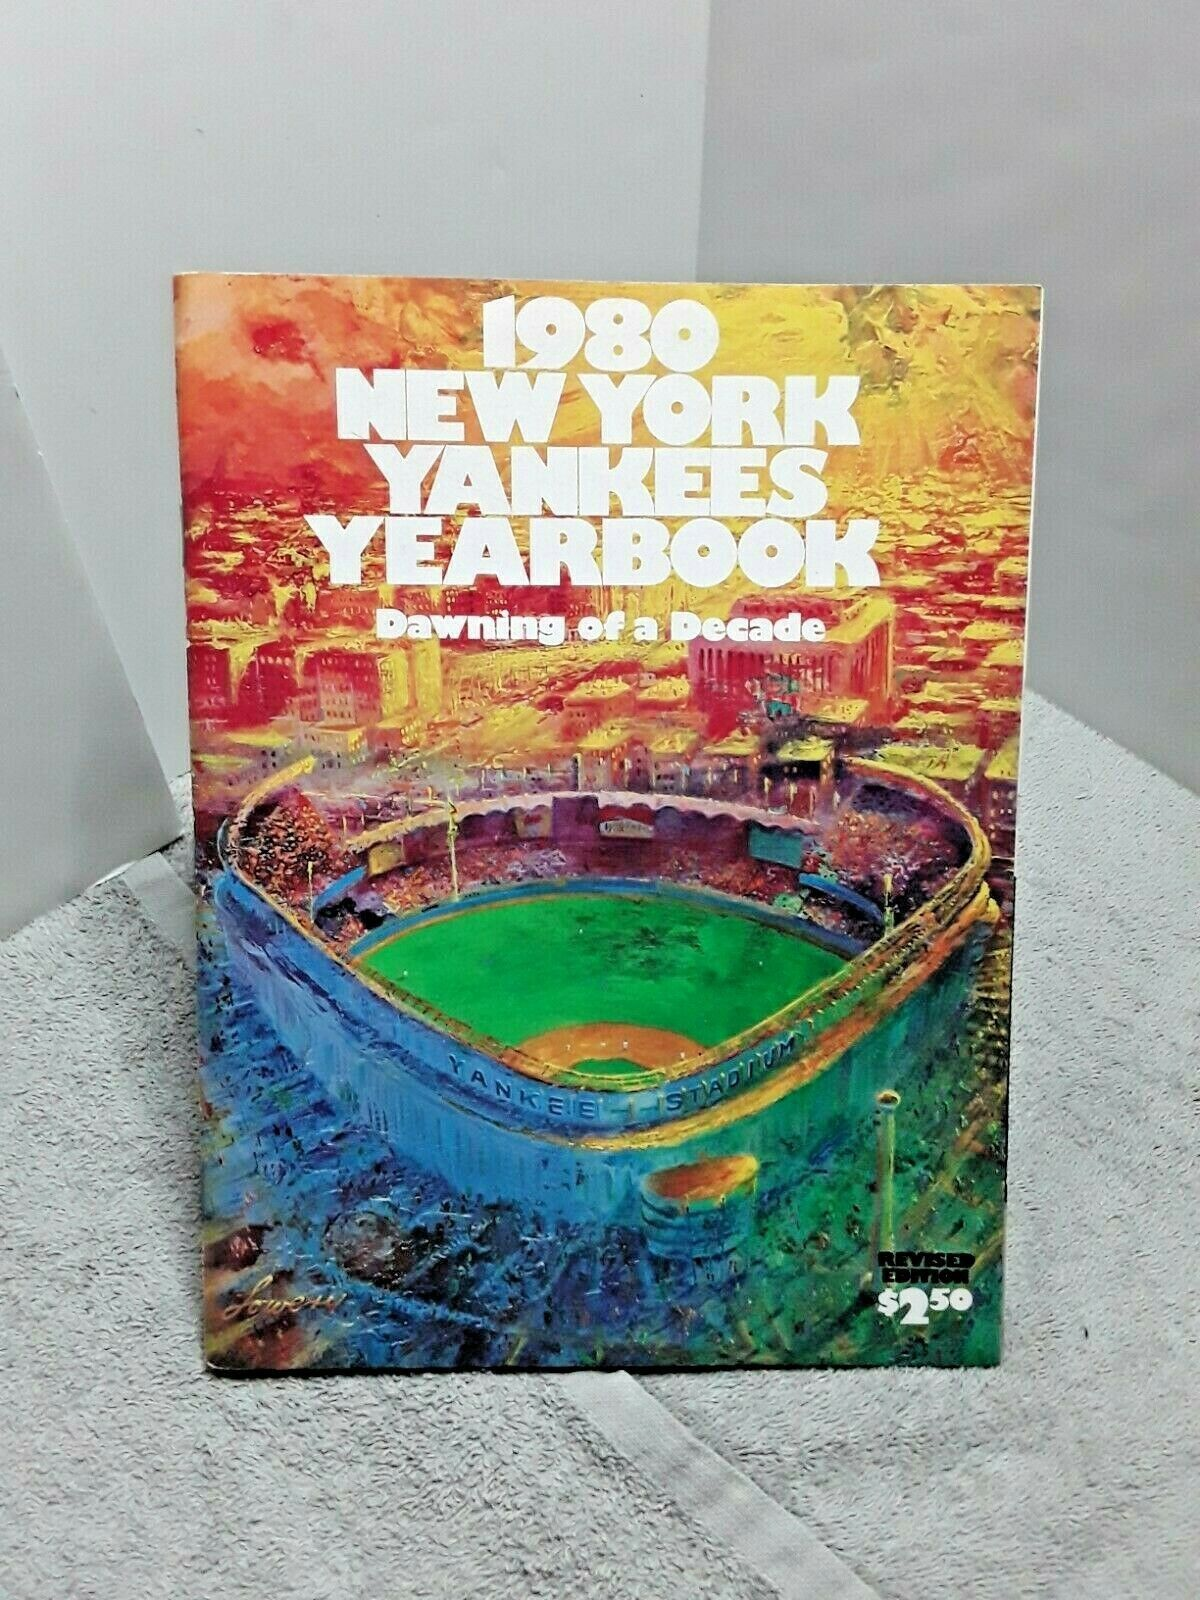 New York Yankees 1980 Official Yearbook With Inner Foldout Poster Vintage By Fchoicevintage On Etsy In 2020 New York Yankees Vintage Posters Yankees